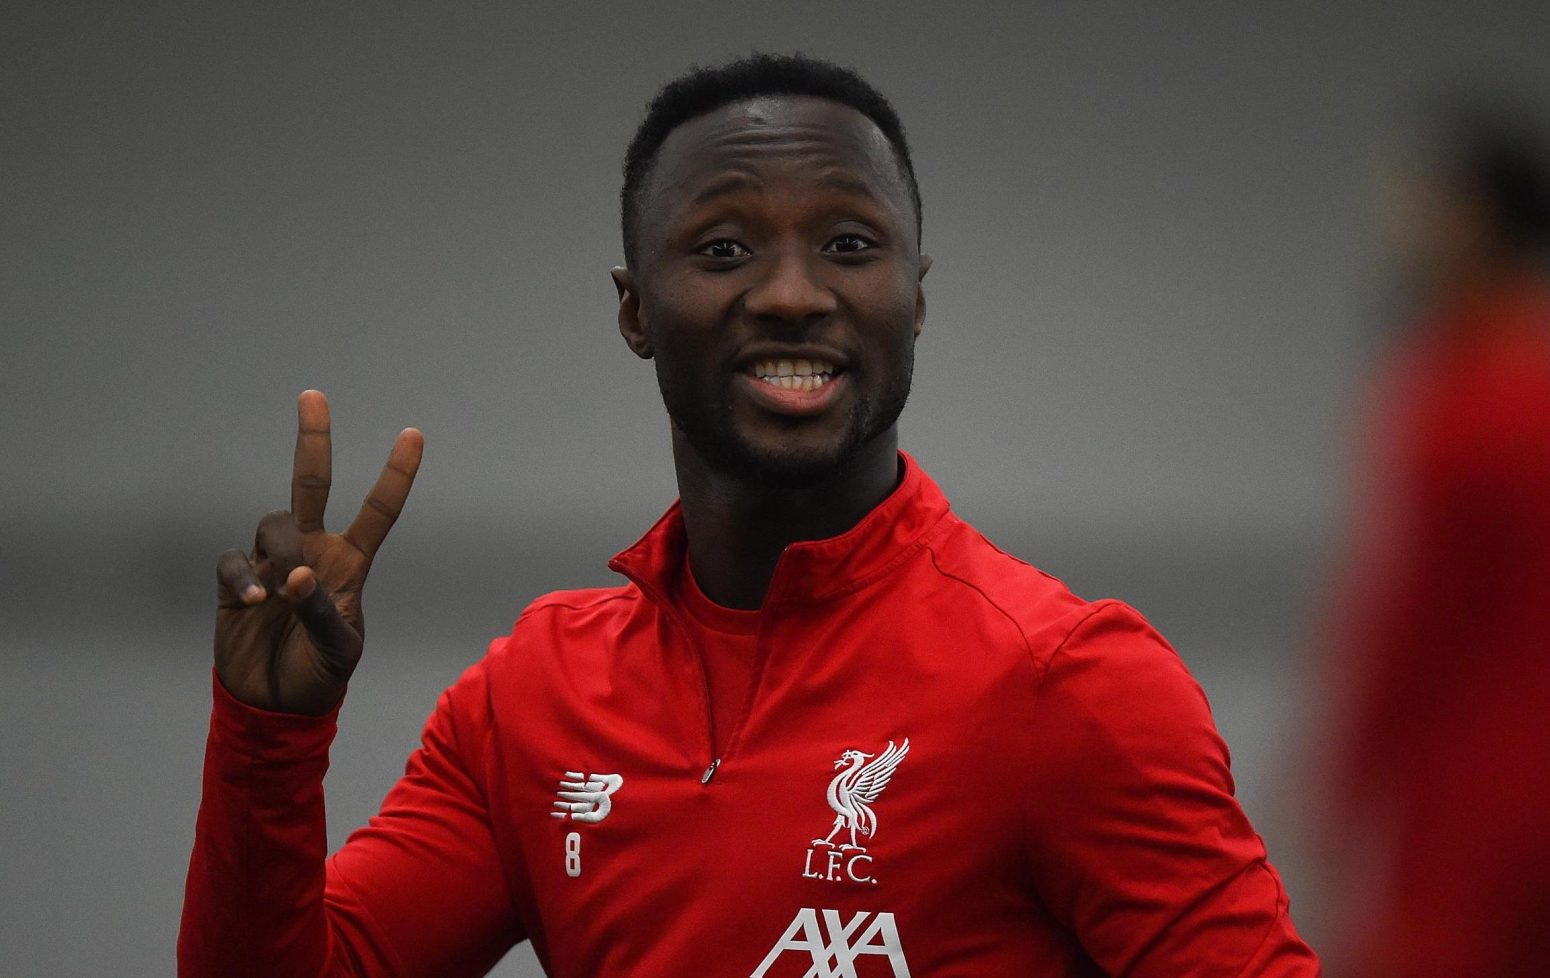 Keita injured in warm-up, Milner comes in – Confirmed Liverpool lineup vs Sheffield United